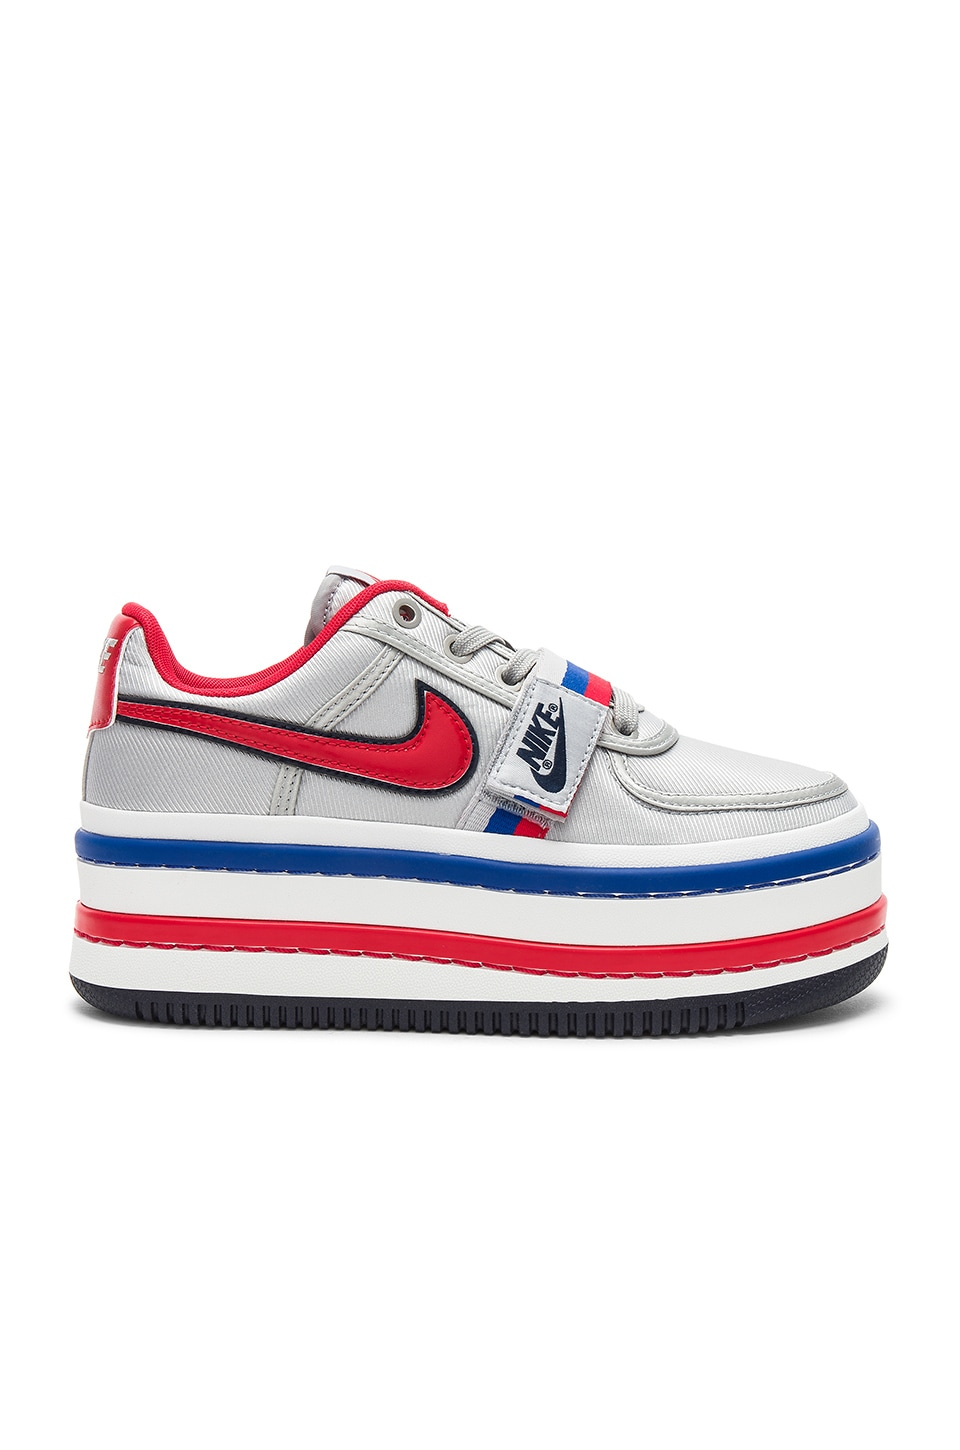 Nike Vandal 2K Faux Leather-Trimmed Metallic Faille Platform Sneakers In Red